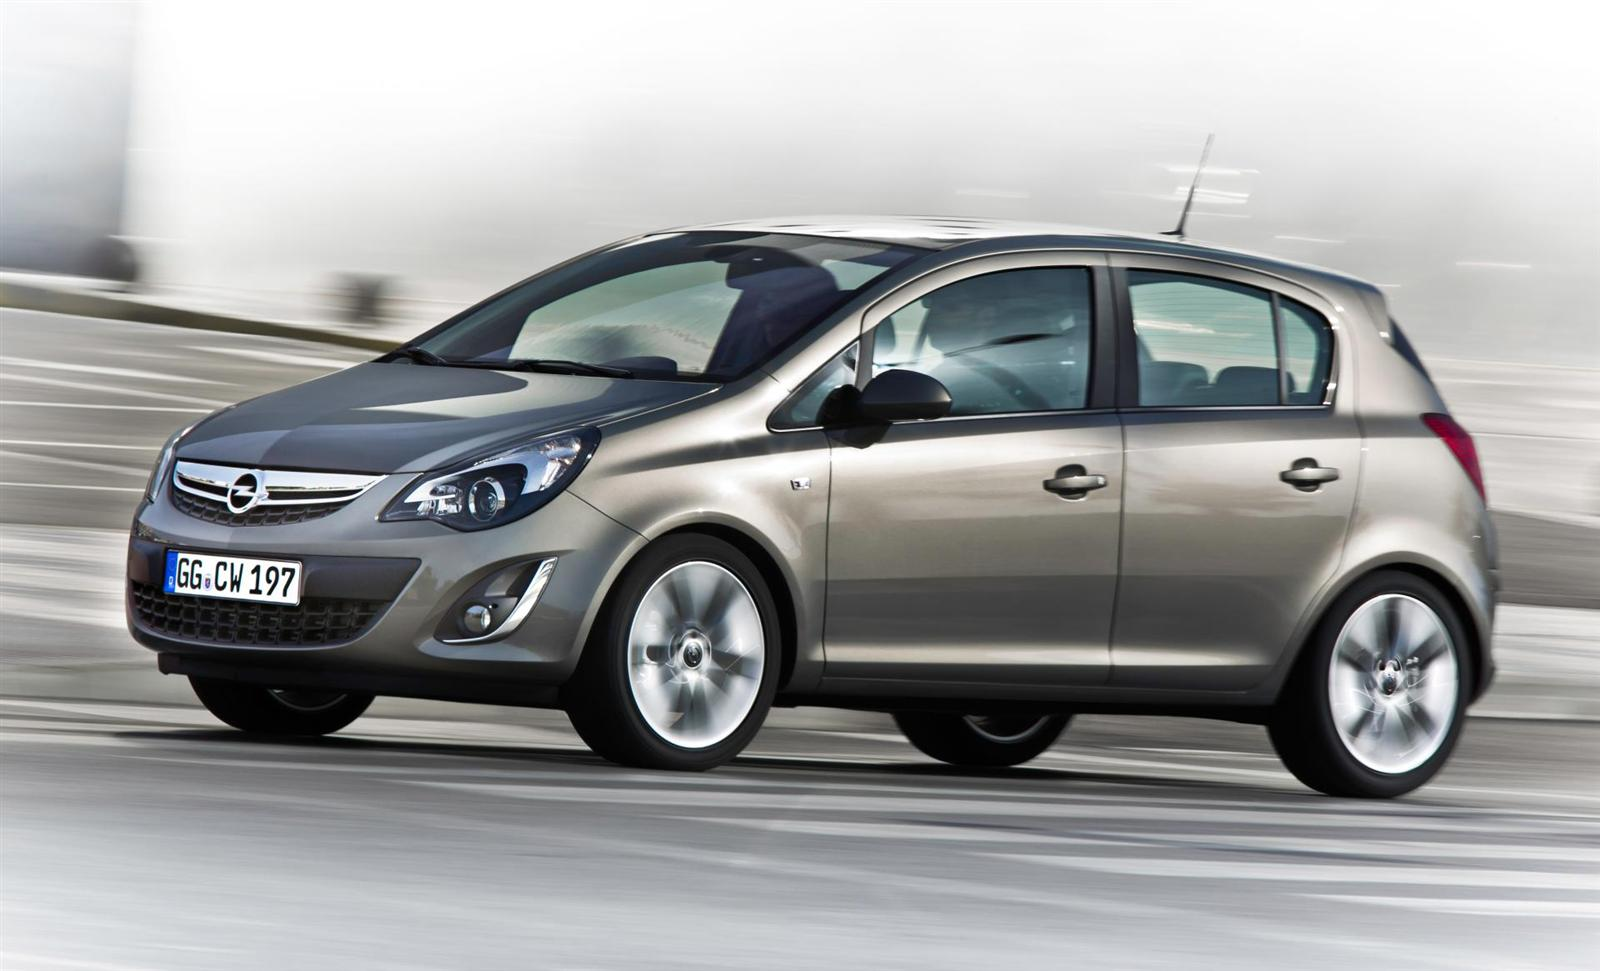 opel corsa information image credit  Free Download Image Of